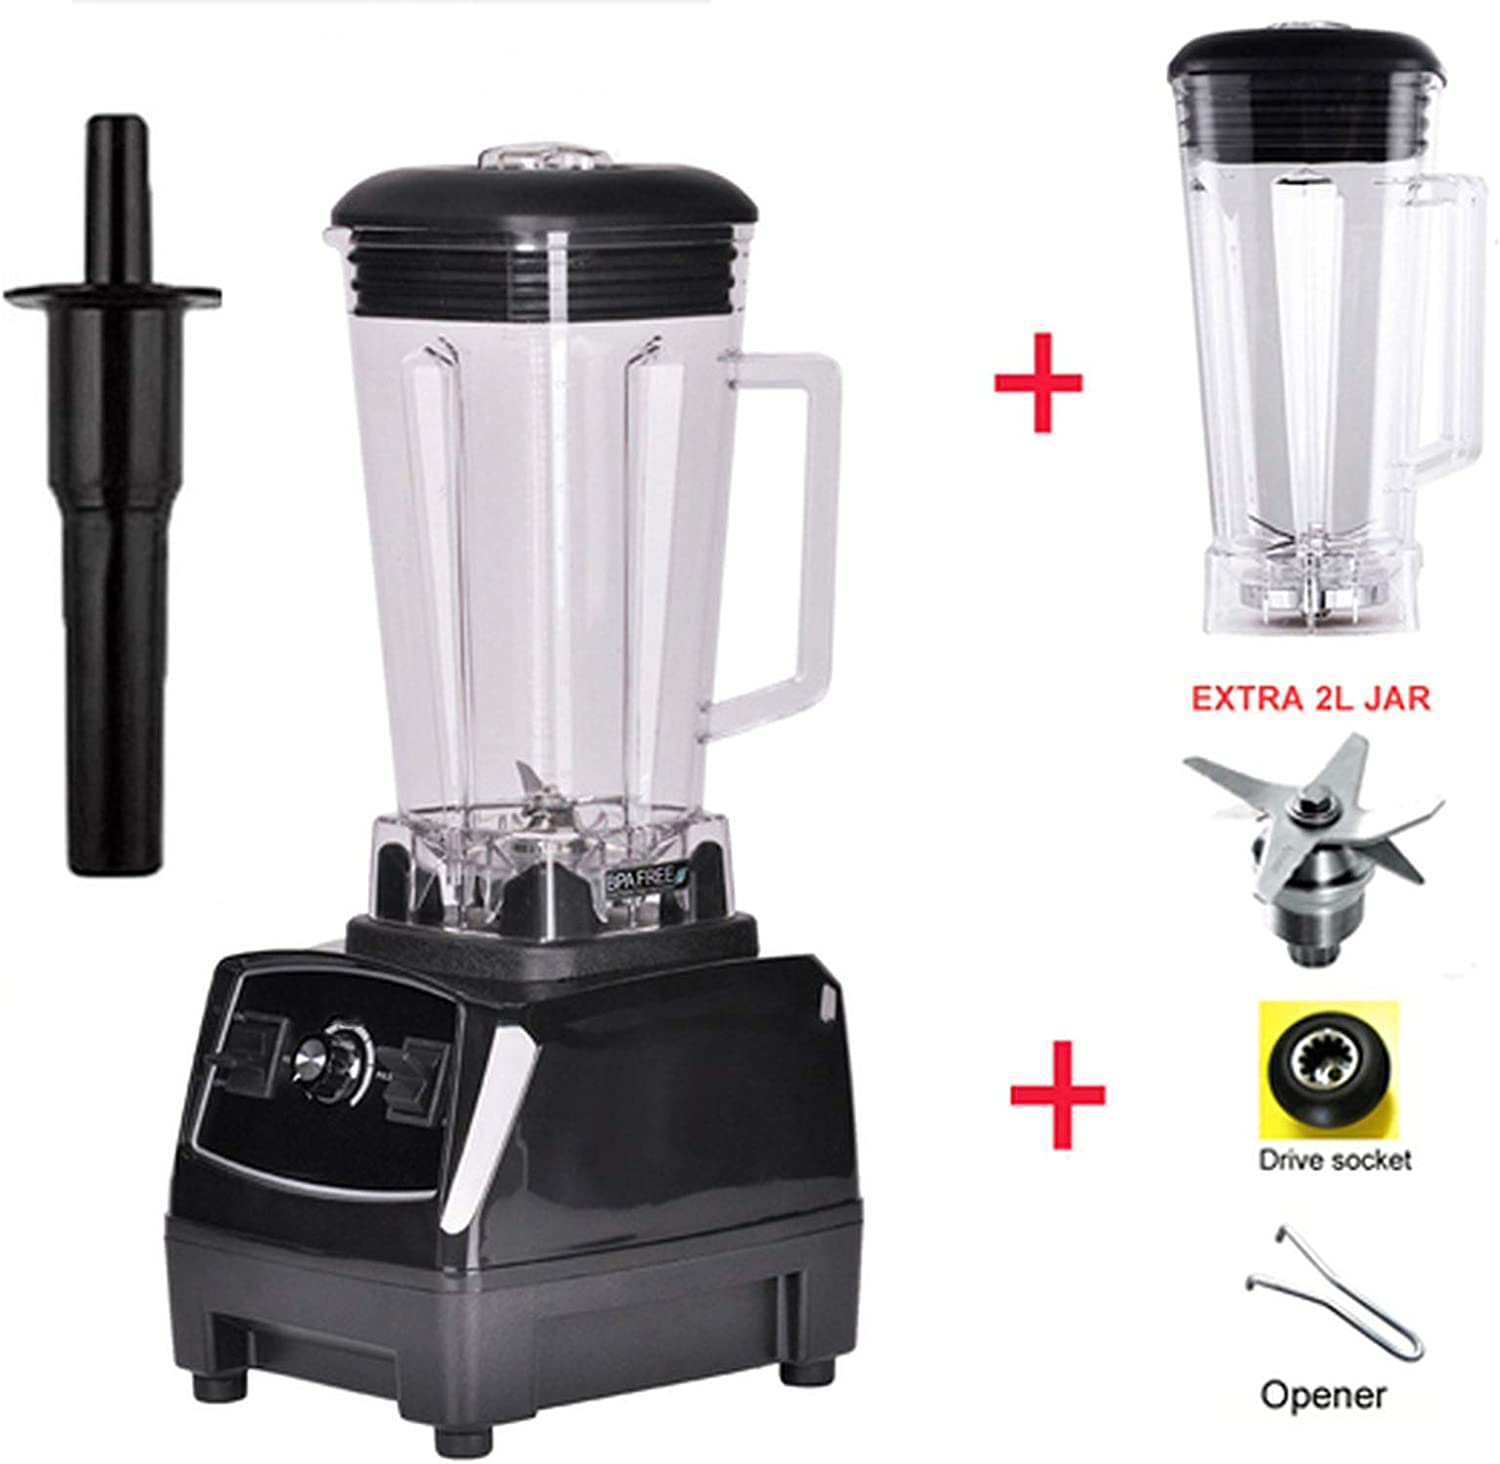 2200W BPA FREE 3HP 2L G5200 high power commercial home professional smoothies power blender food mixer juicer fruit processor,BLACK 2L JUG 3 PARTS